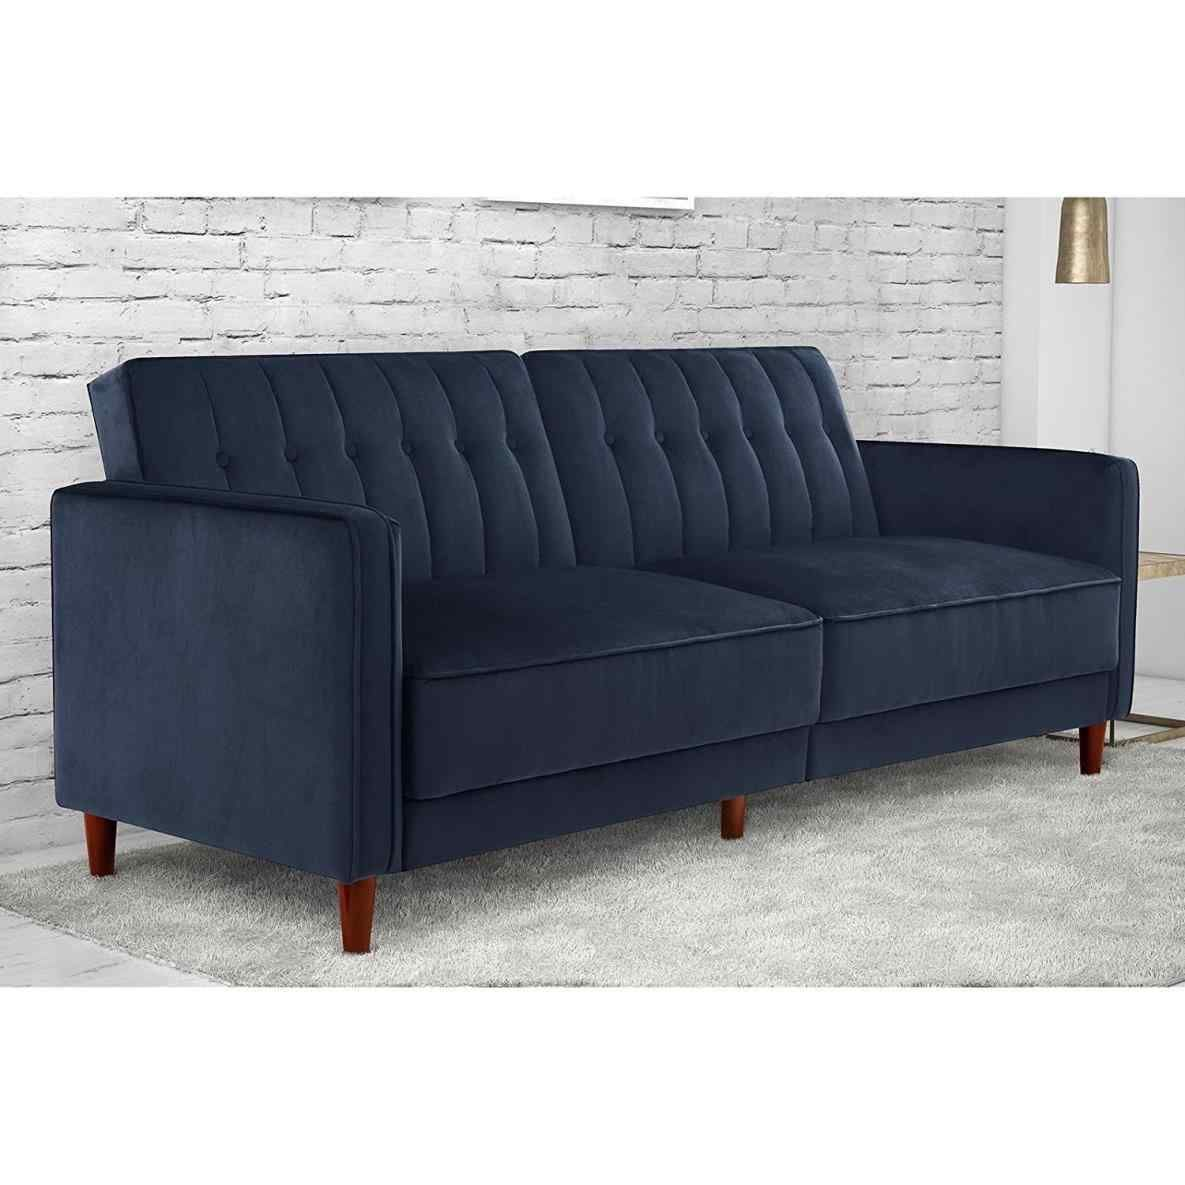 seat beds blu bank blue dot sleeper sofa deep seat beds blu ...